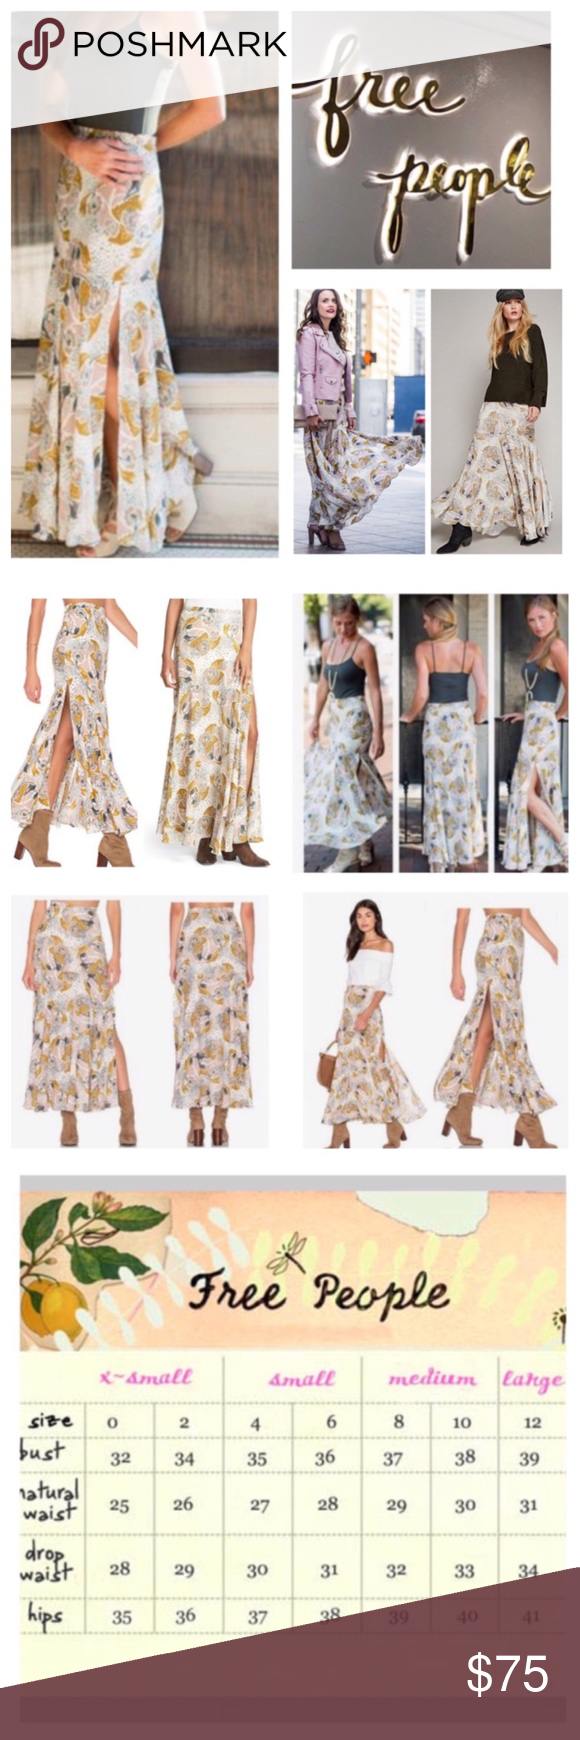 6a324c99ab 🆕Free People Pebble Fate Floral Maxi Skirt. NWOT. 🆕Free People Pebble Fate